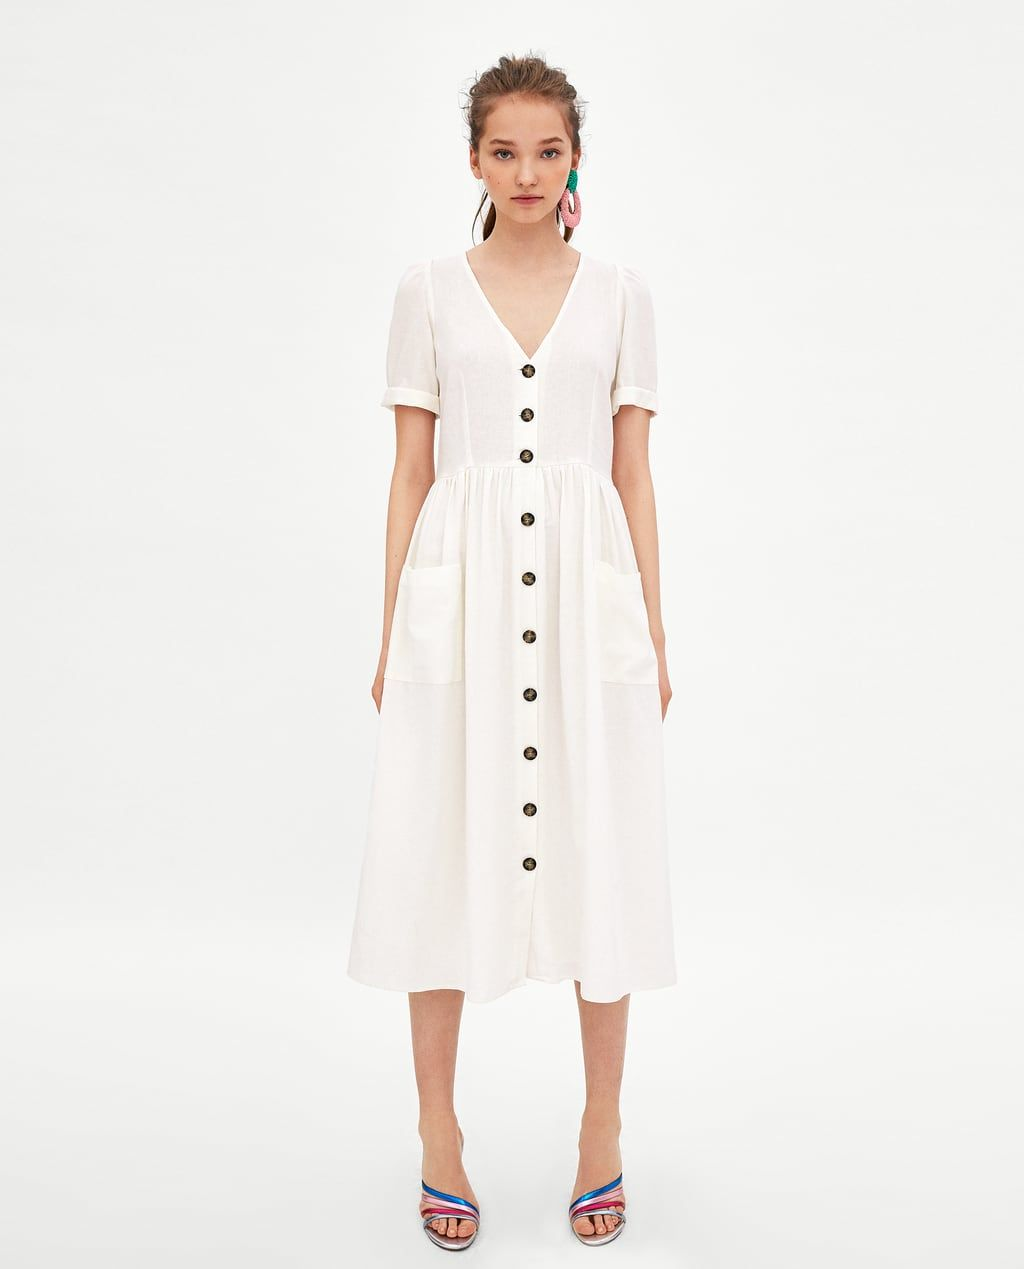 f74d44212a ZARA - WOMAN - MIDI DRESS WITH BUTTONS